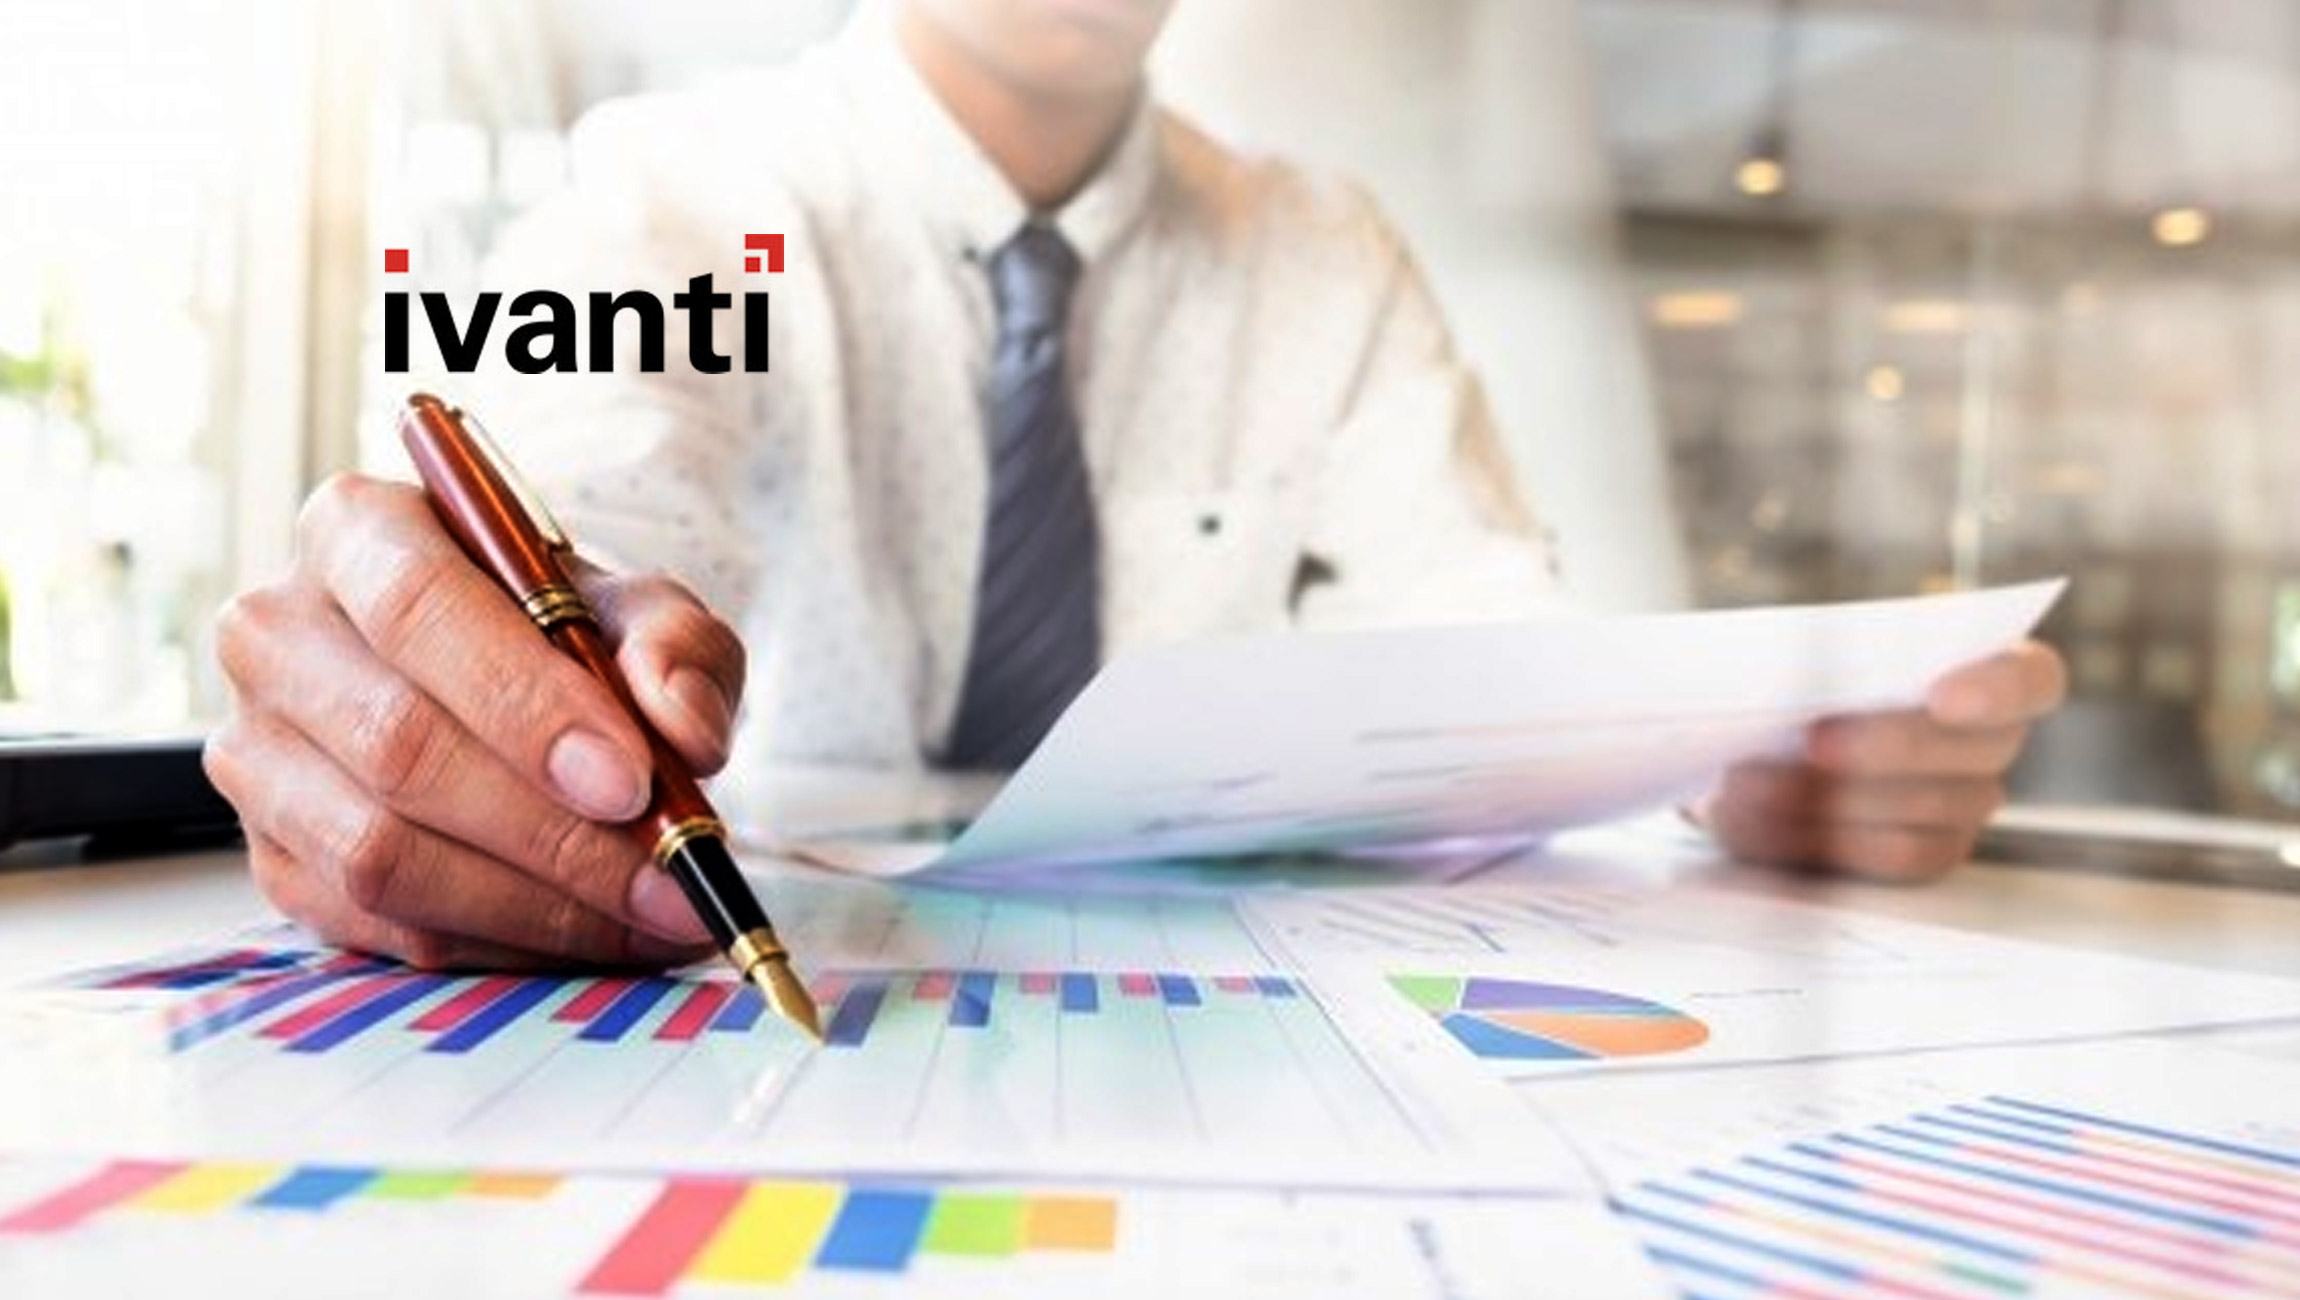 Ivanti Adds New Ivanti Neurons Innovations Powered by Machine Learning to Improve Security Posture and Optimize Asset Spend